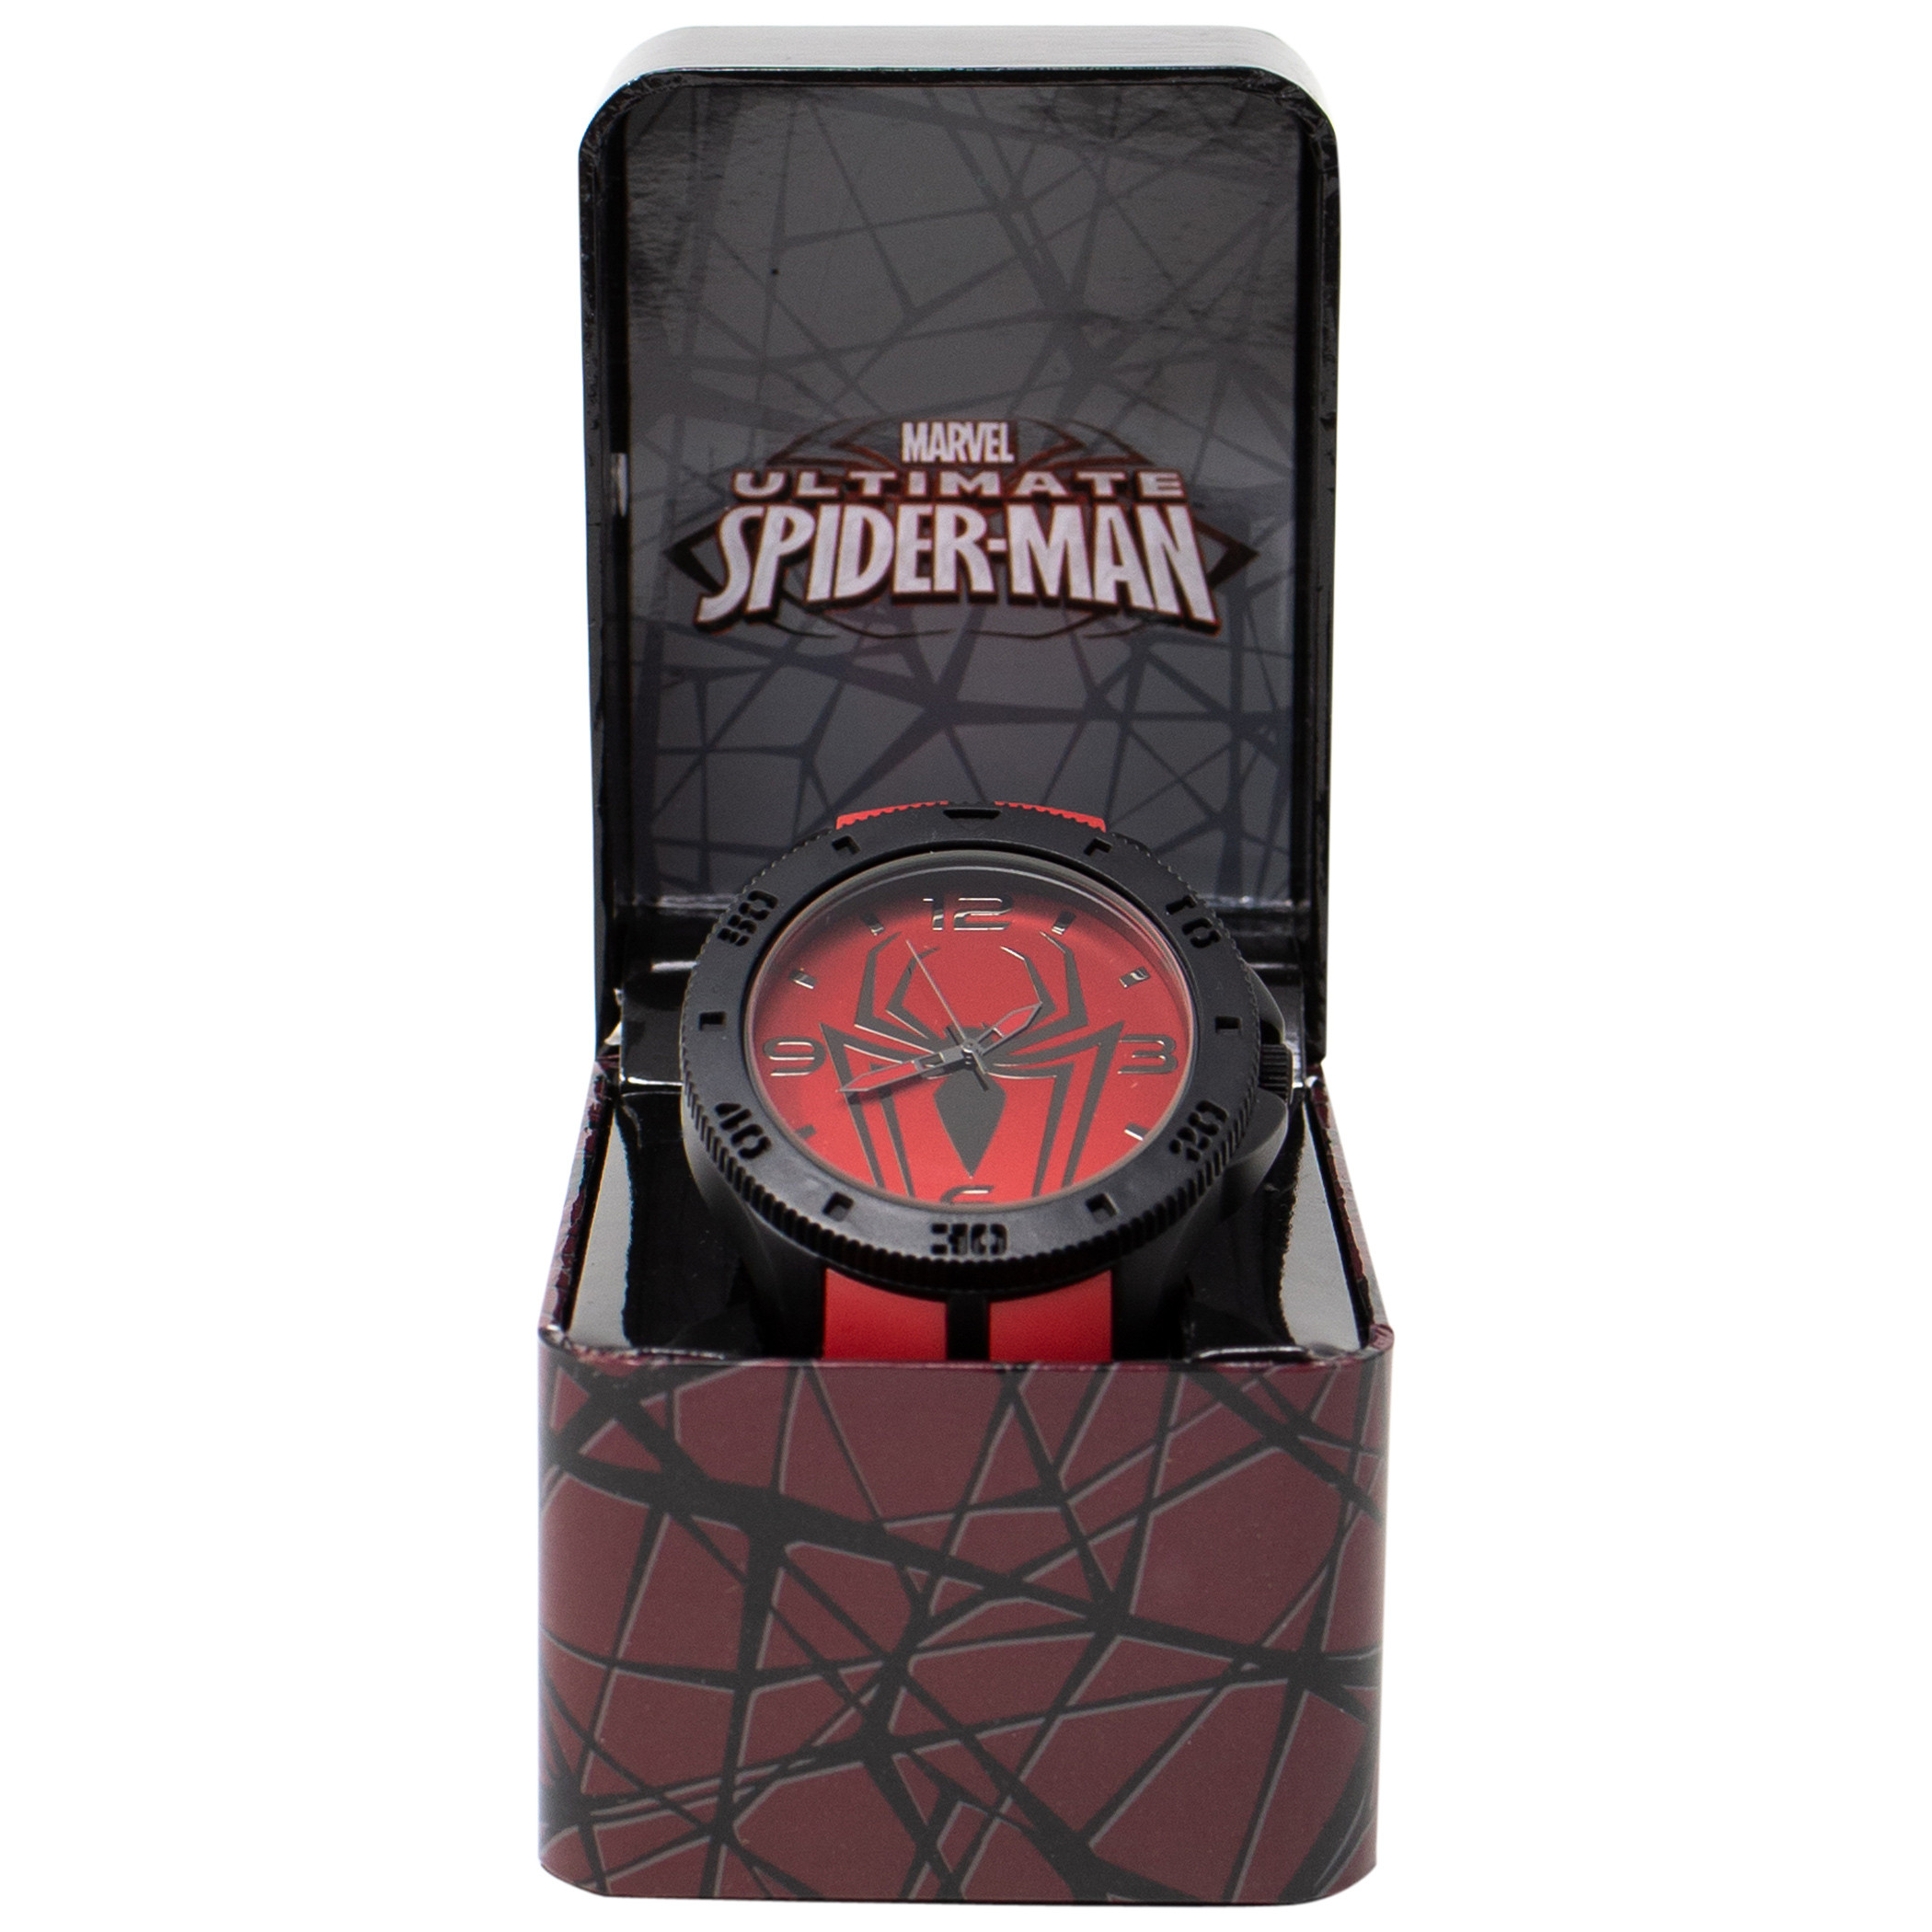 Spider-Man Symbol on Red Watch with Rubber Wristband